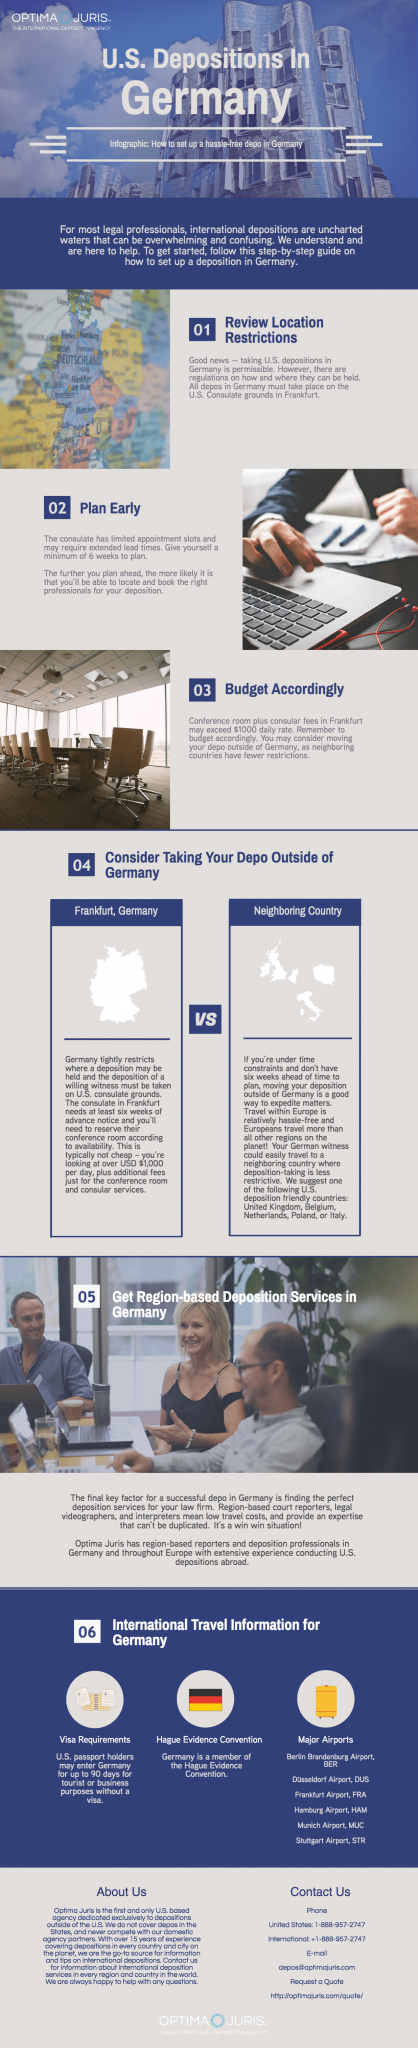 [Infographic] Planning a deposition in Germany